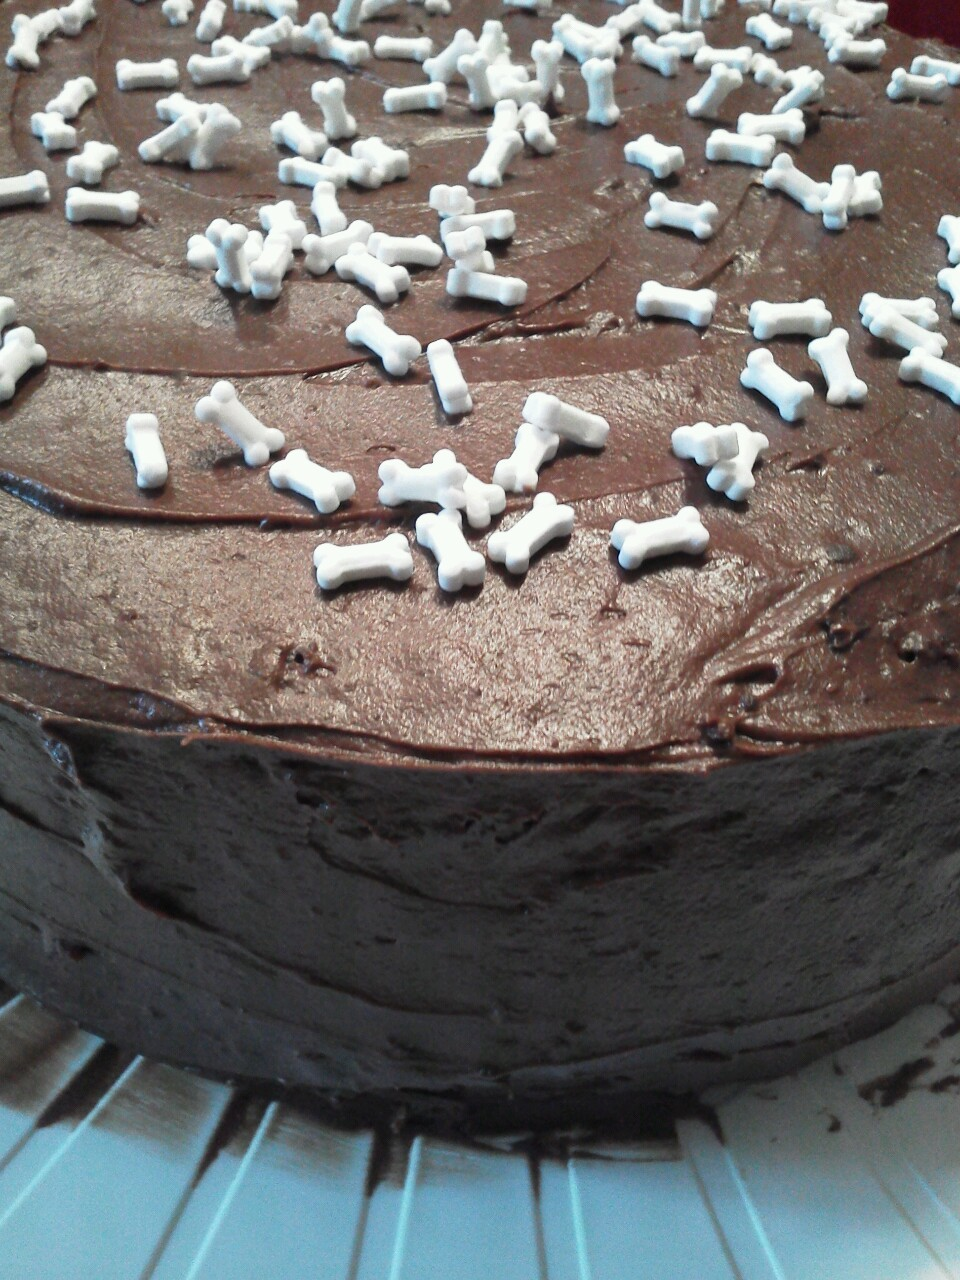 Bone break chocolate cake